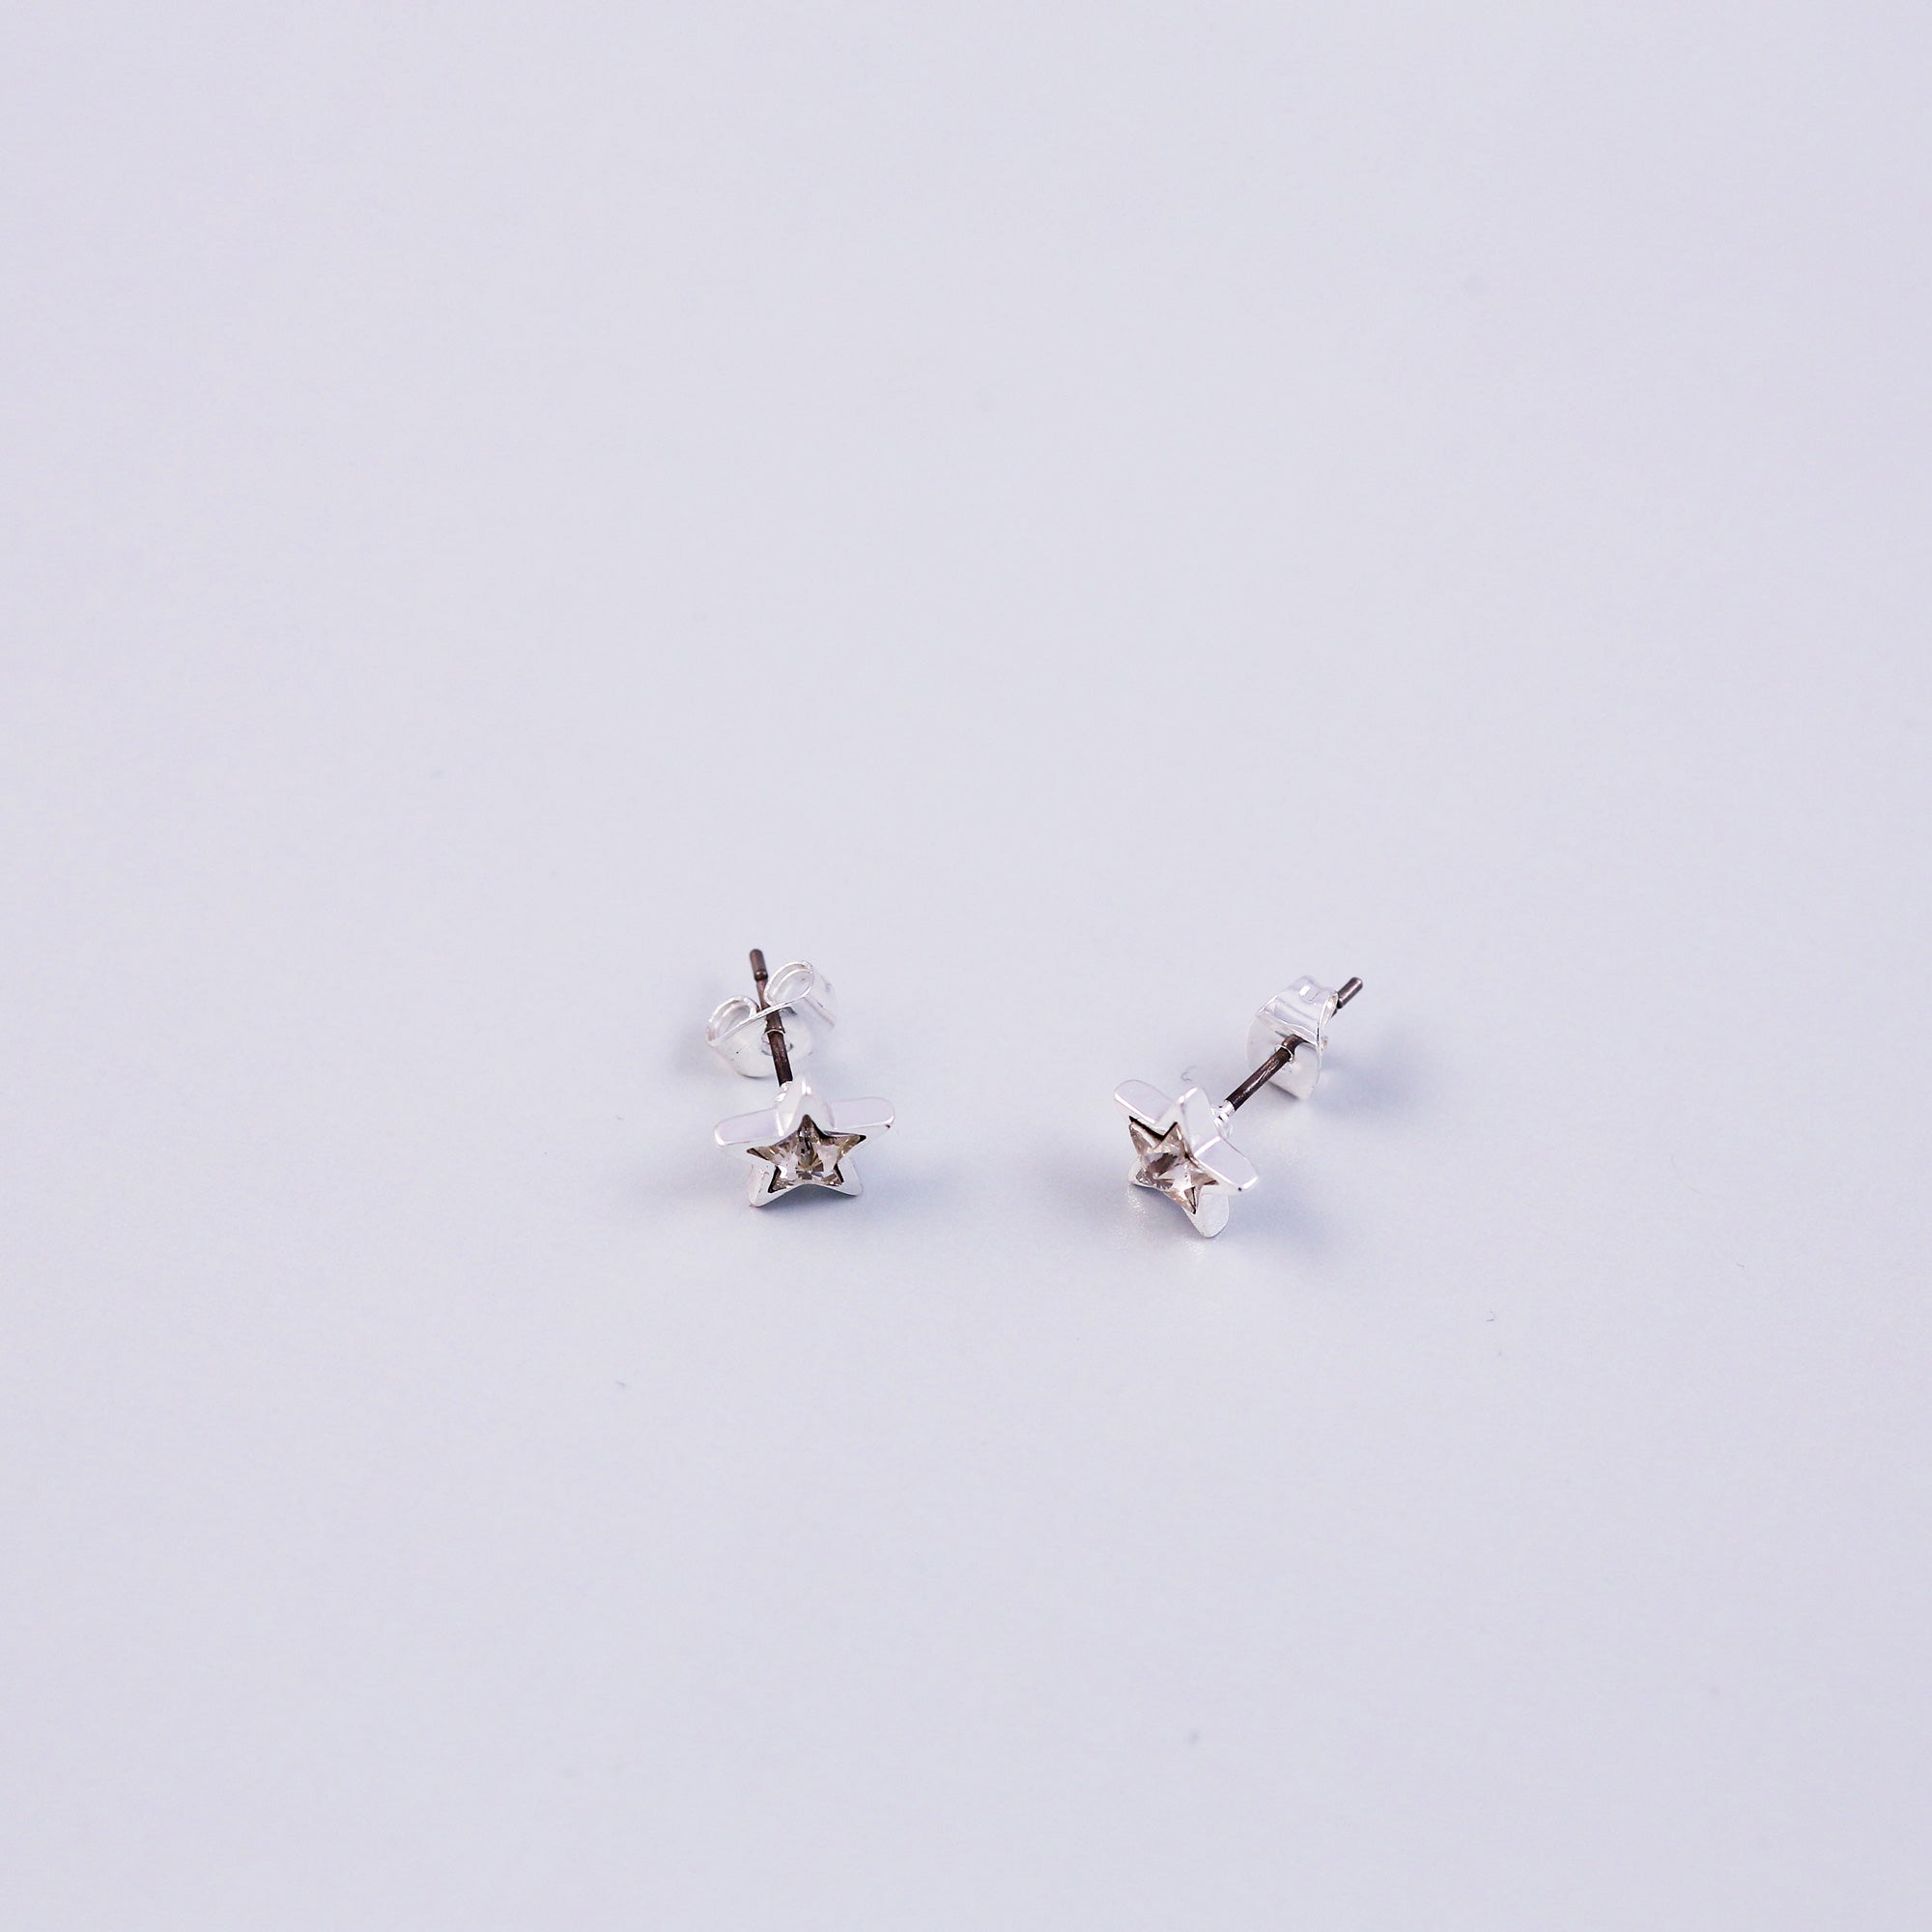 Crystal Star Stud Earrings | Silver Star Earrings | Stud Earrings for